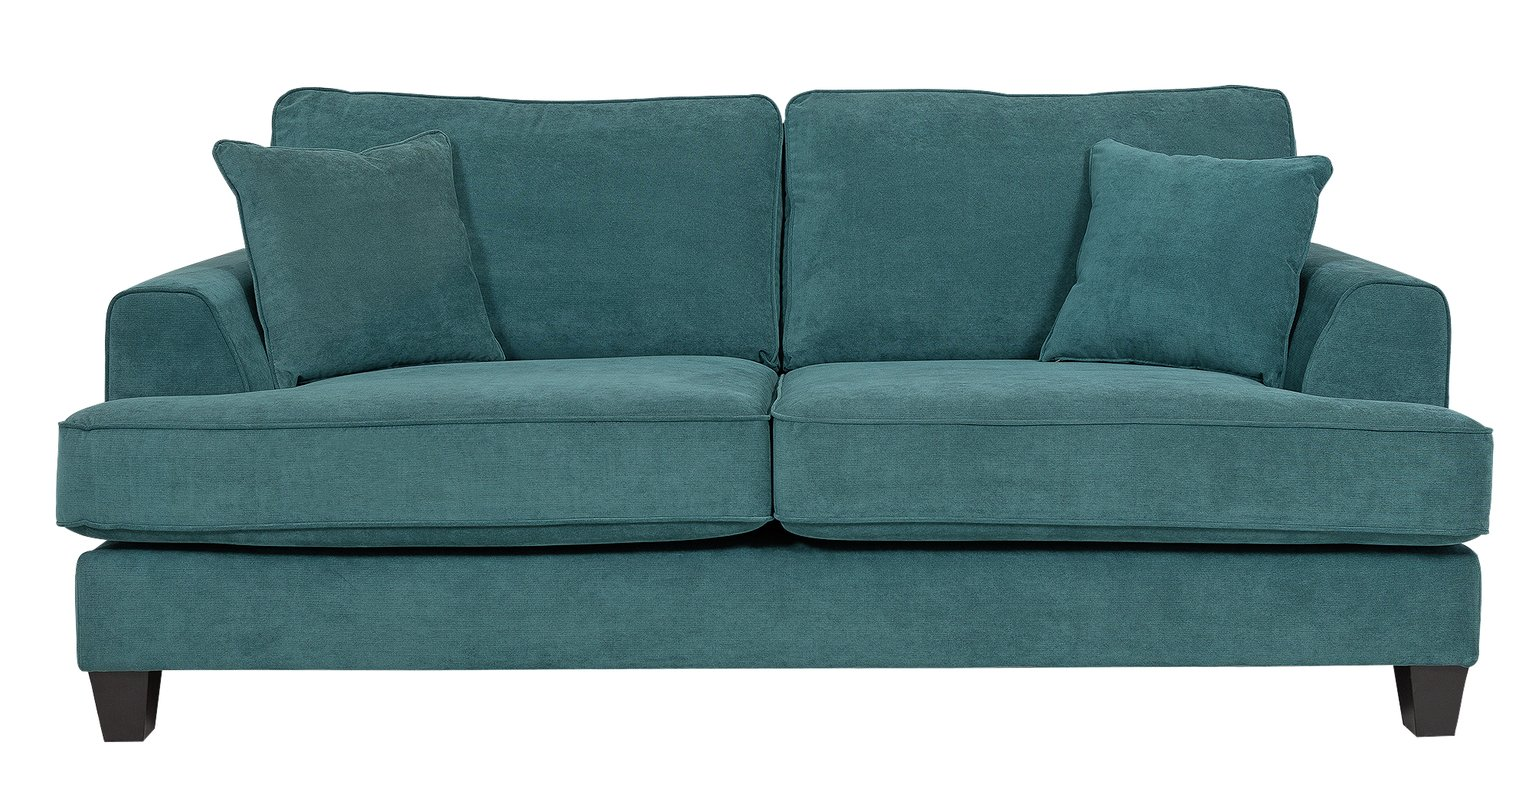 Heart of House Hampstead 3 Seater Fabric Sofa - Ocean Blue at Argos